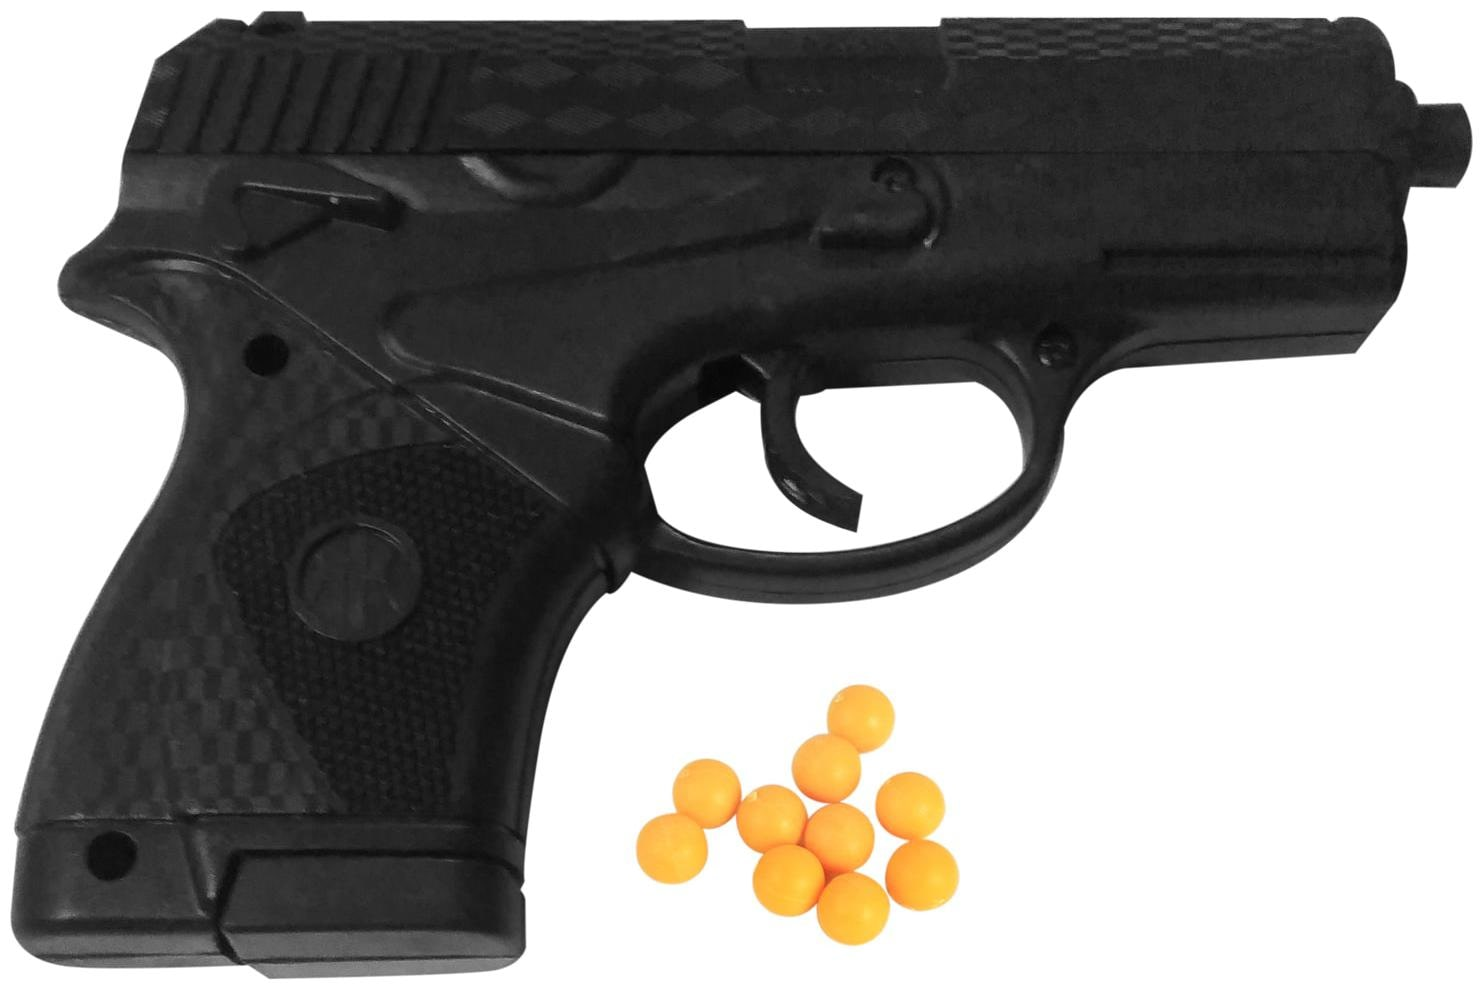 https://assetscdn1.paytm.com/images/catalog/product/K/KI/KIDBB-SHOT-GUN-DEAL98124288D3CBFE/1564625817088_4.jpg